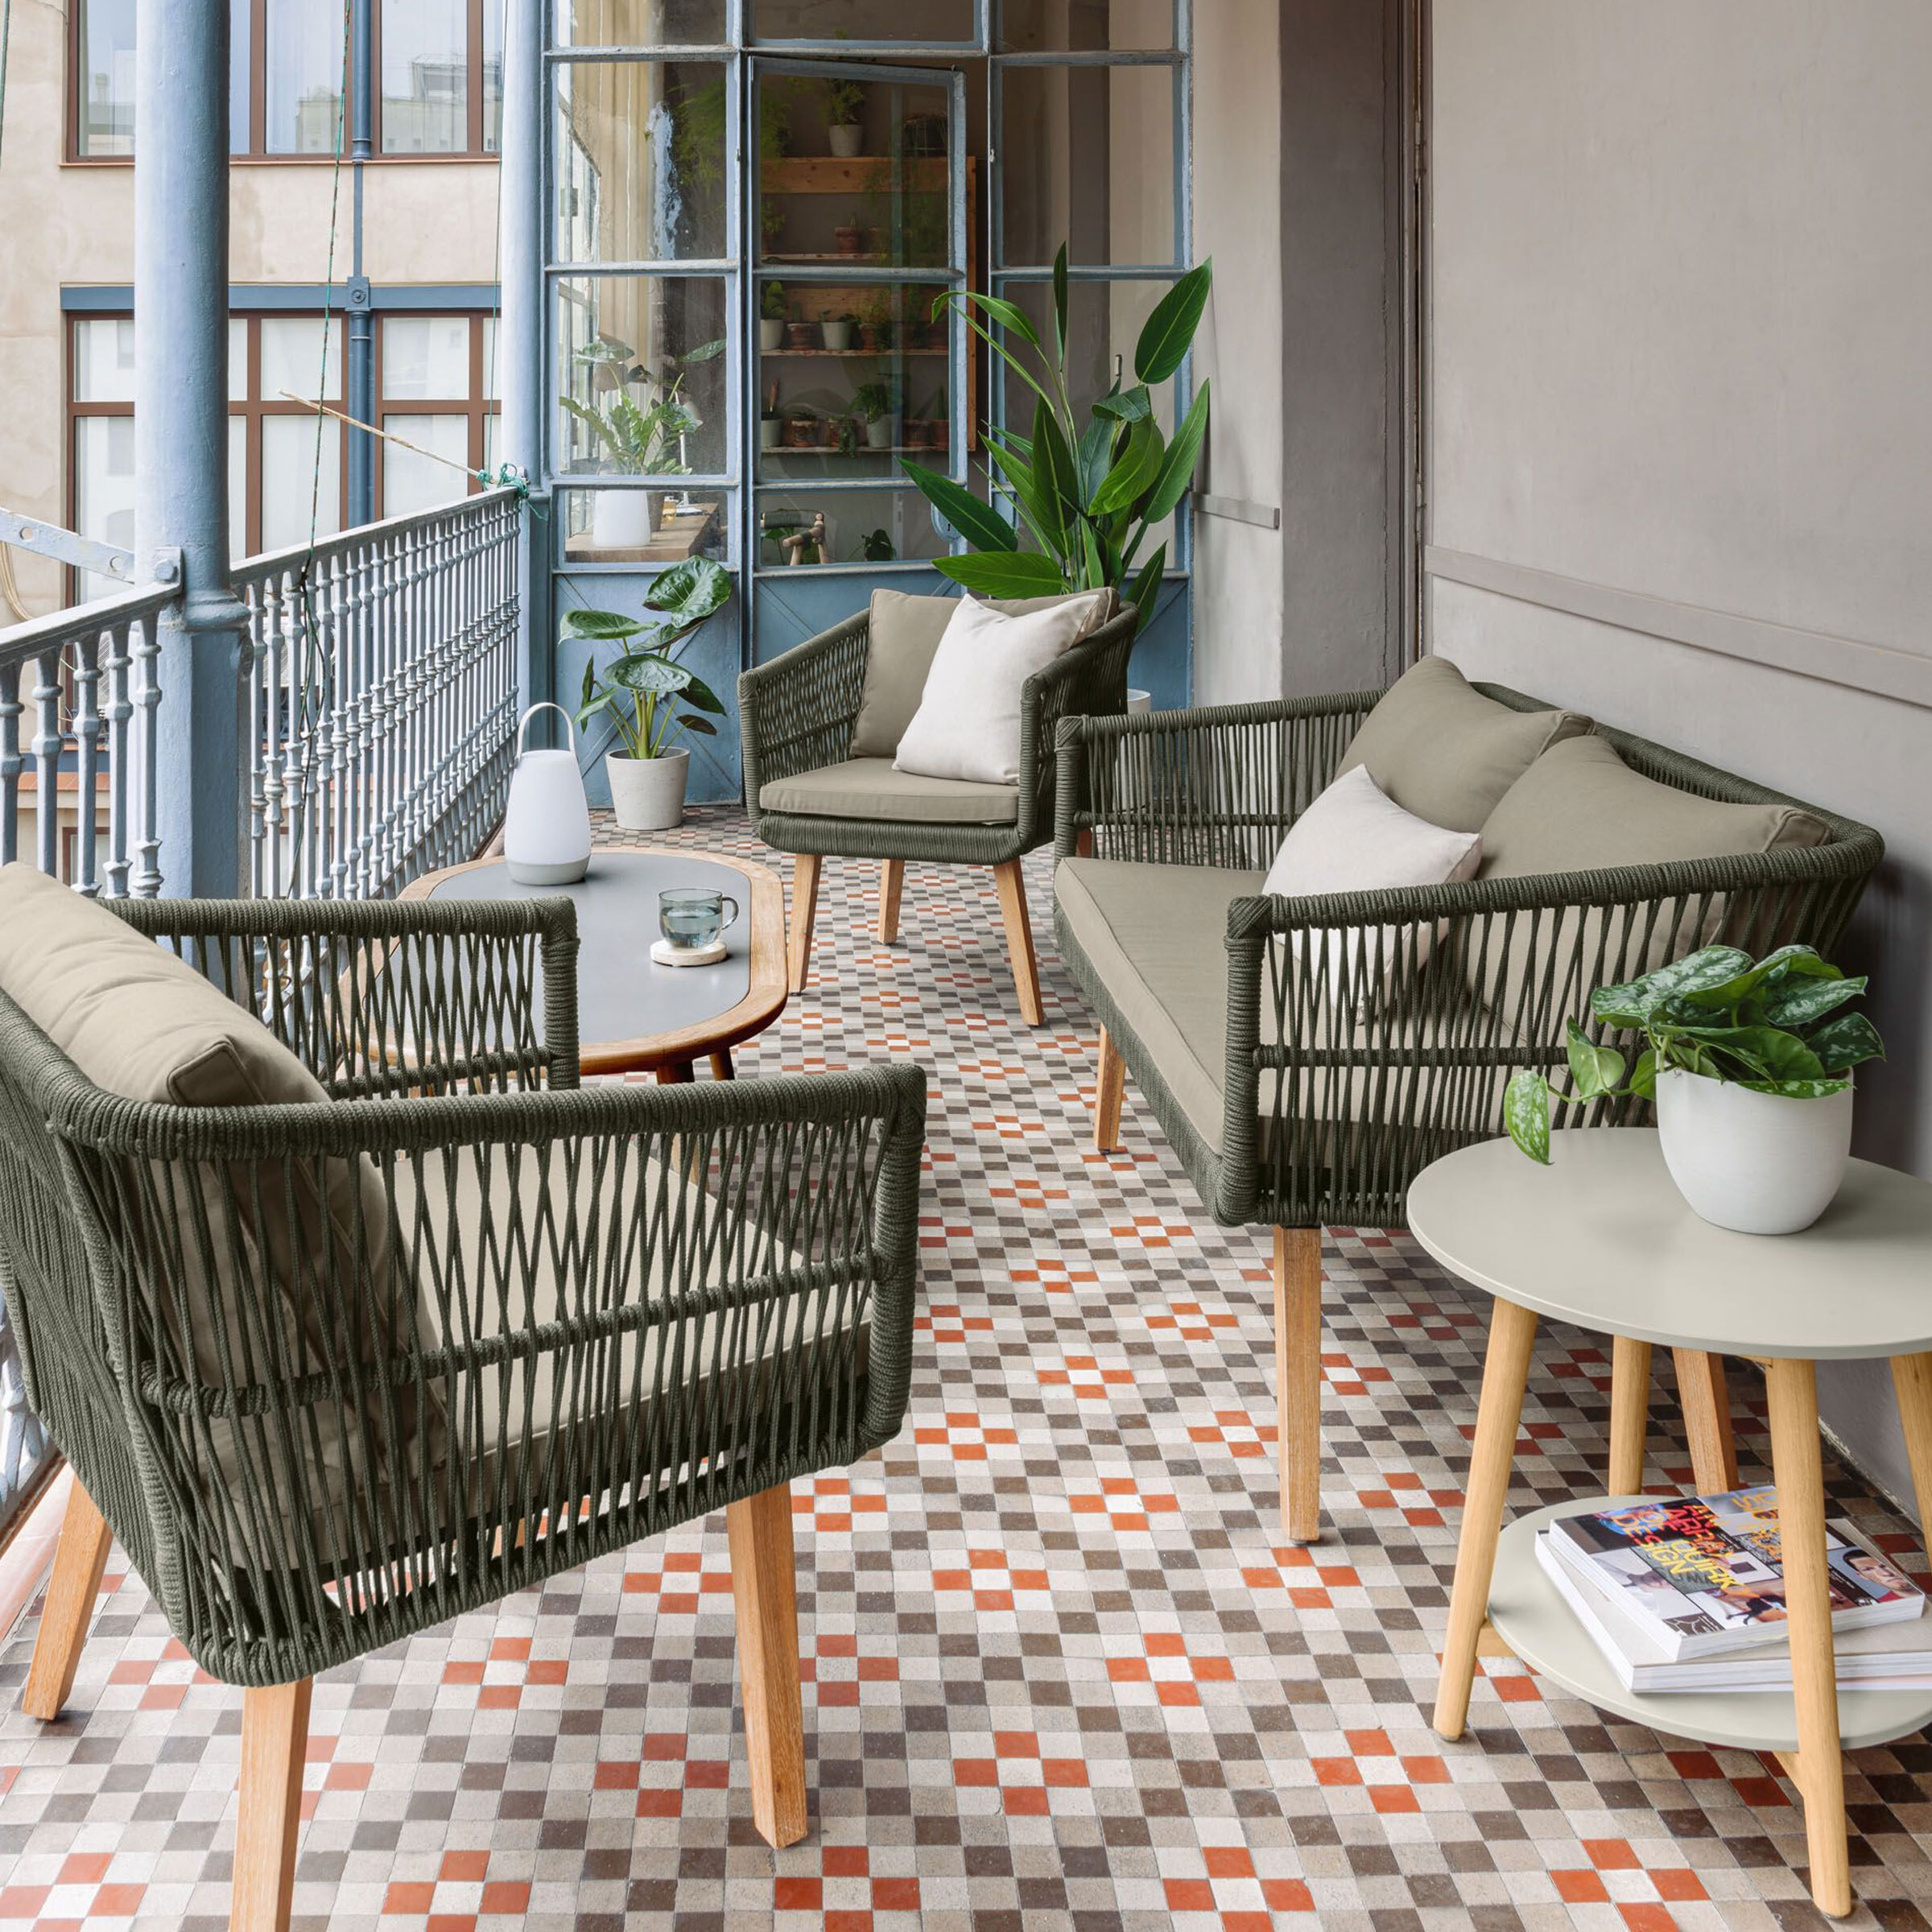 Kave Home Tuinset 'Inti', kleur Groen | Kave Home